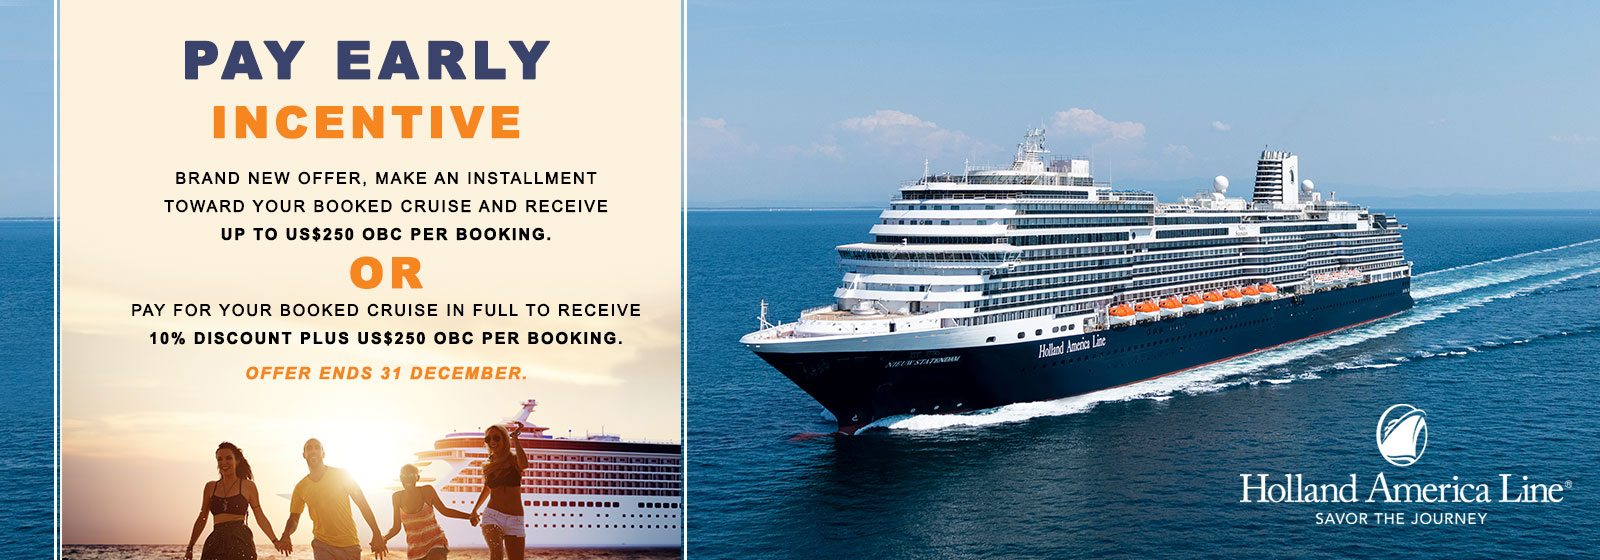 Holland America - Pay Early Incentive2